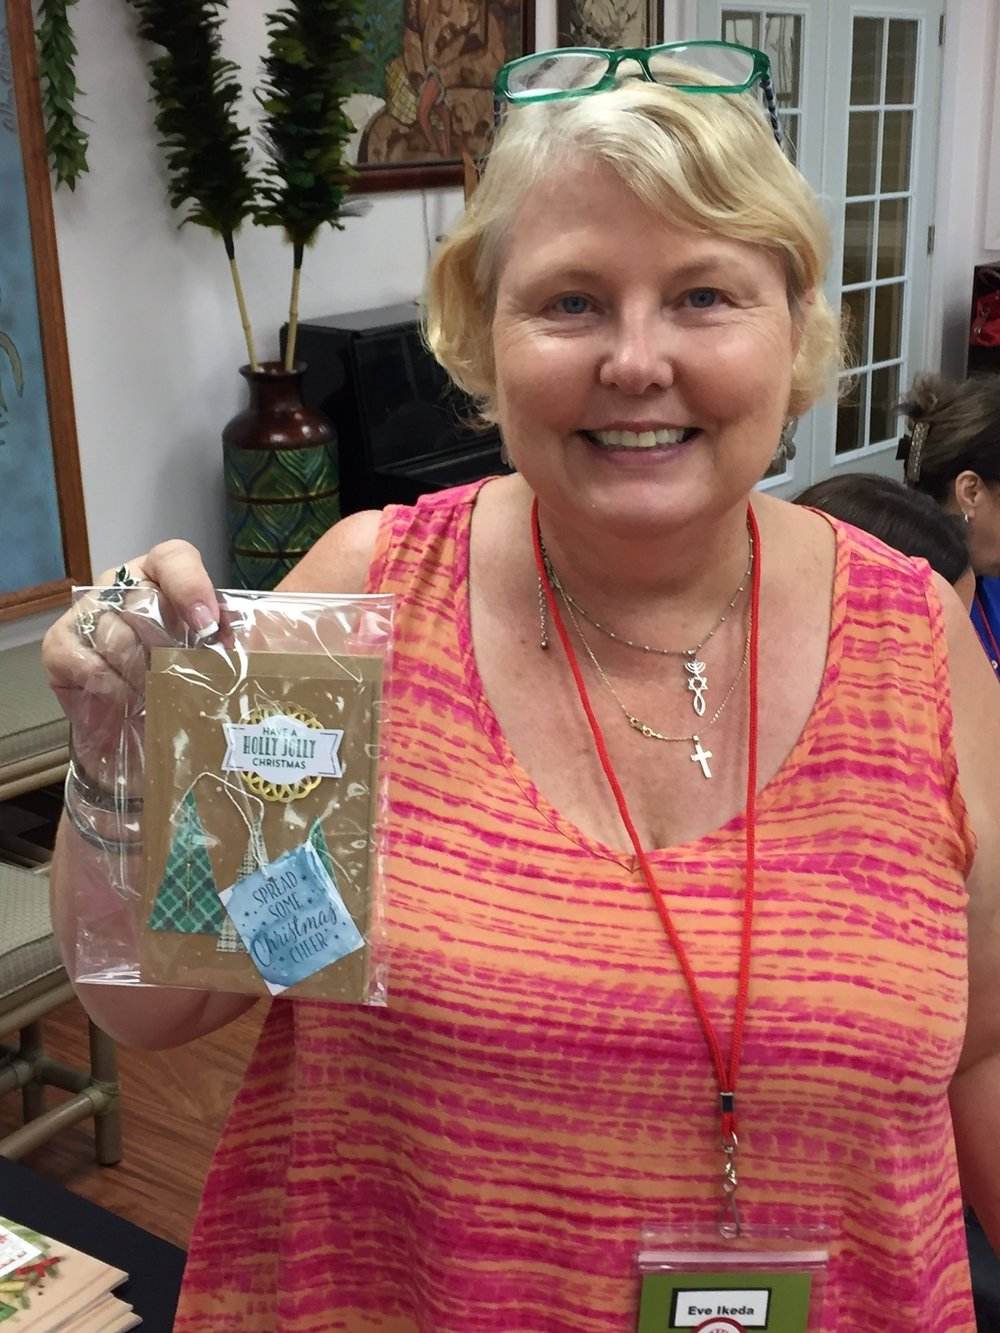 Eve and her prize - www.stampedwithaloha.com